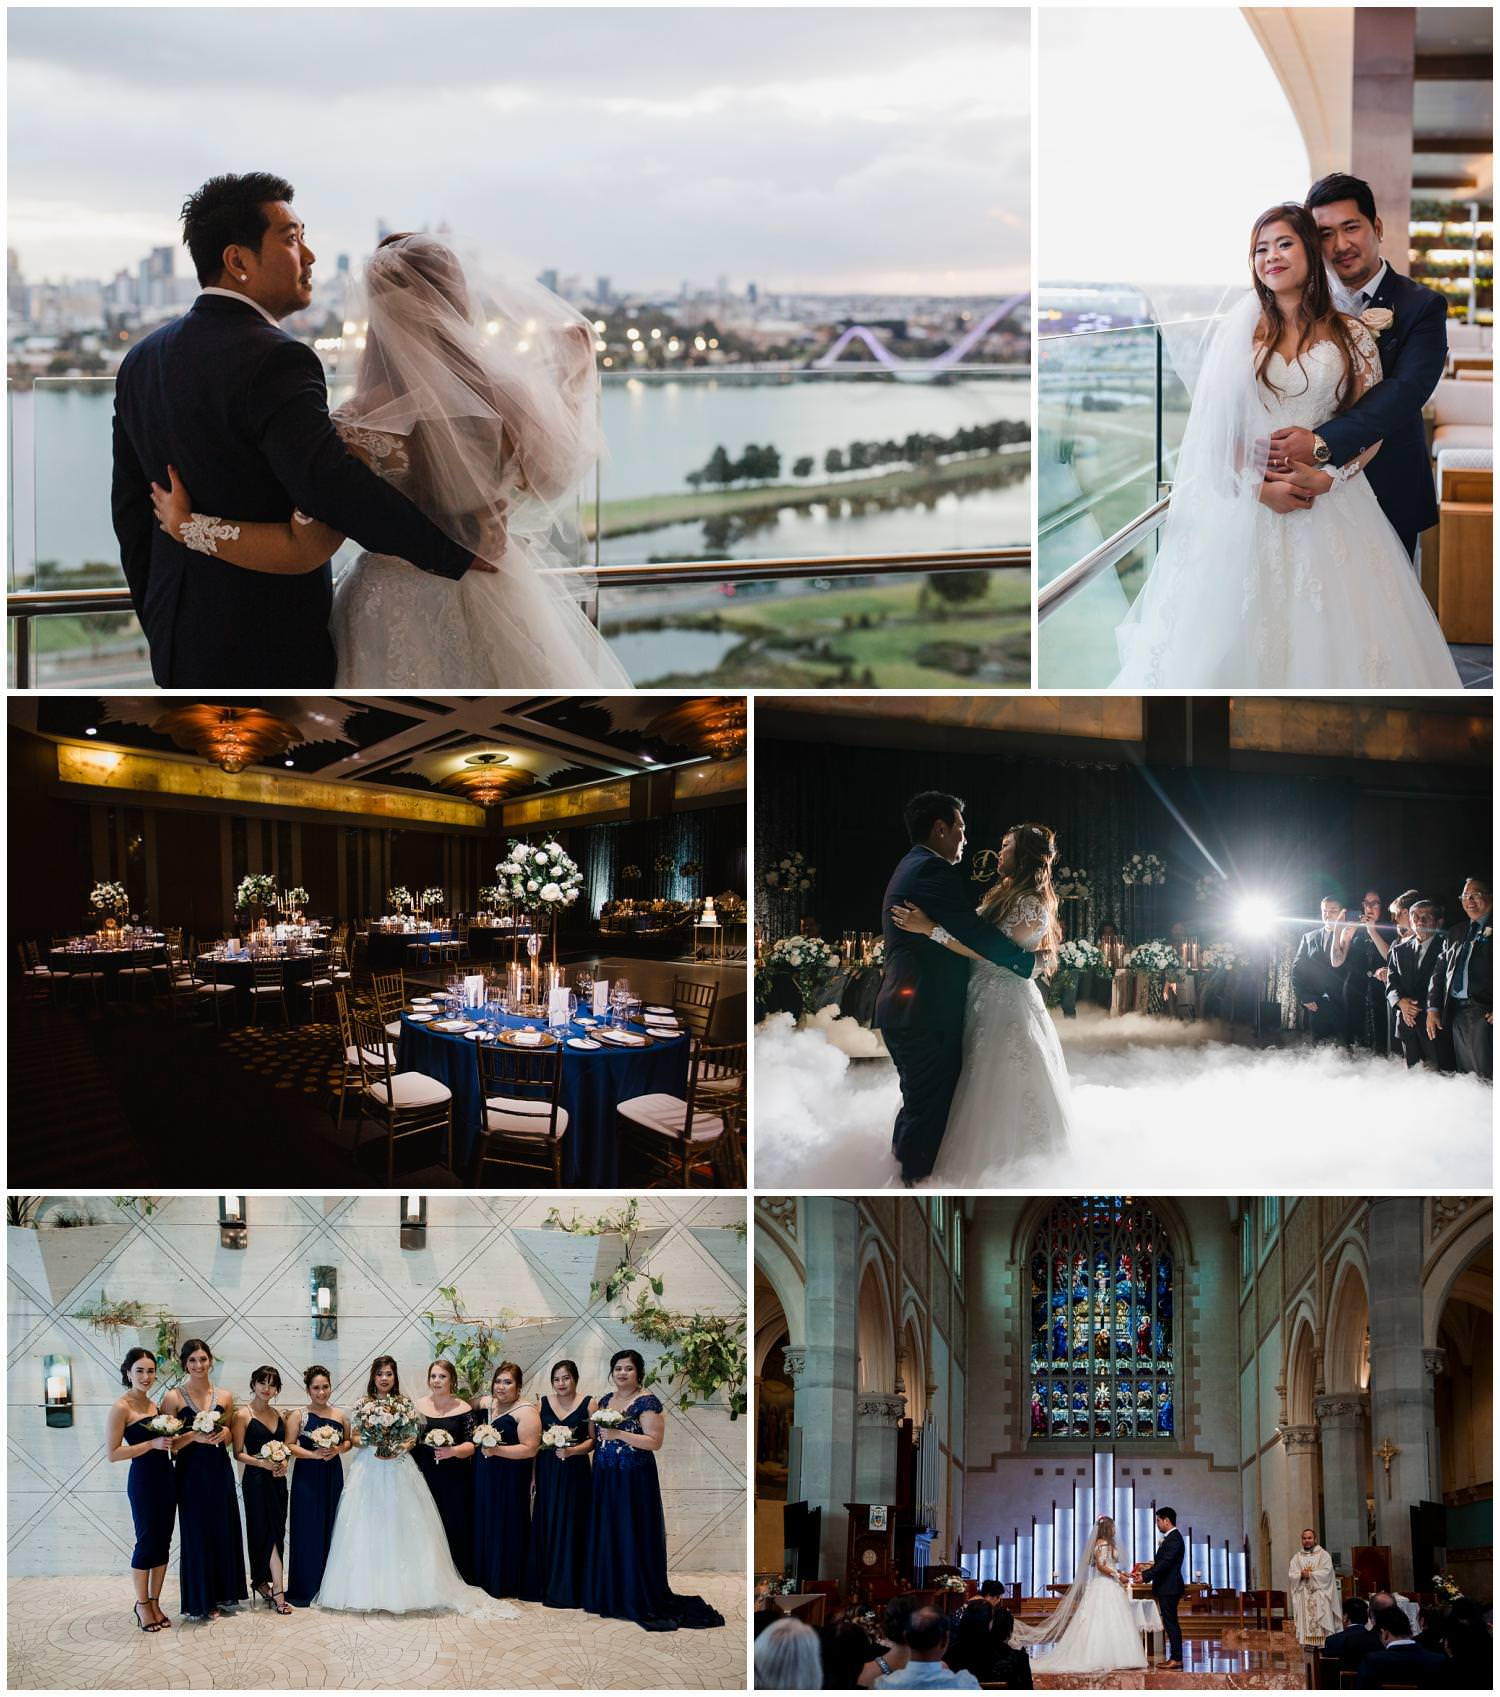 Disa + Jayson - St Mary's Catholic   Church Wedding